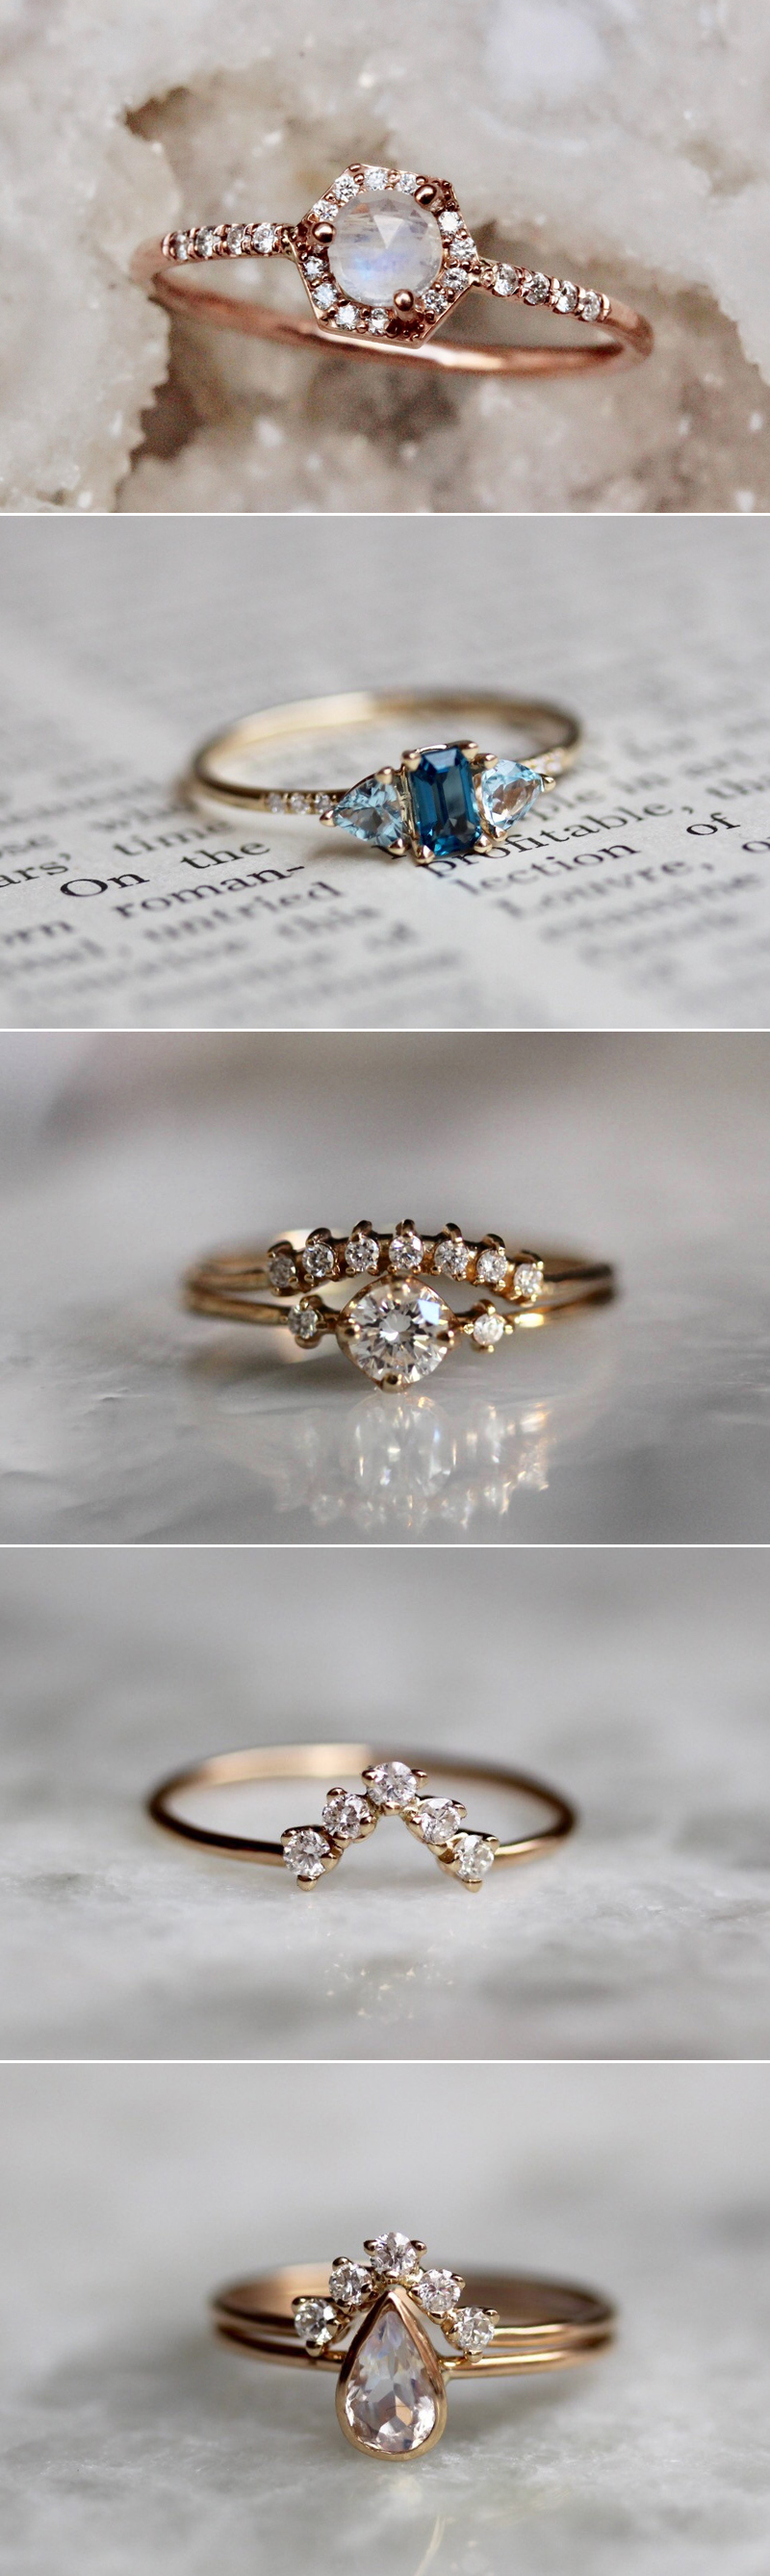 06-Best Selling Engagement Rings (LieselLove)